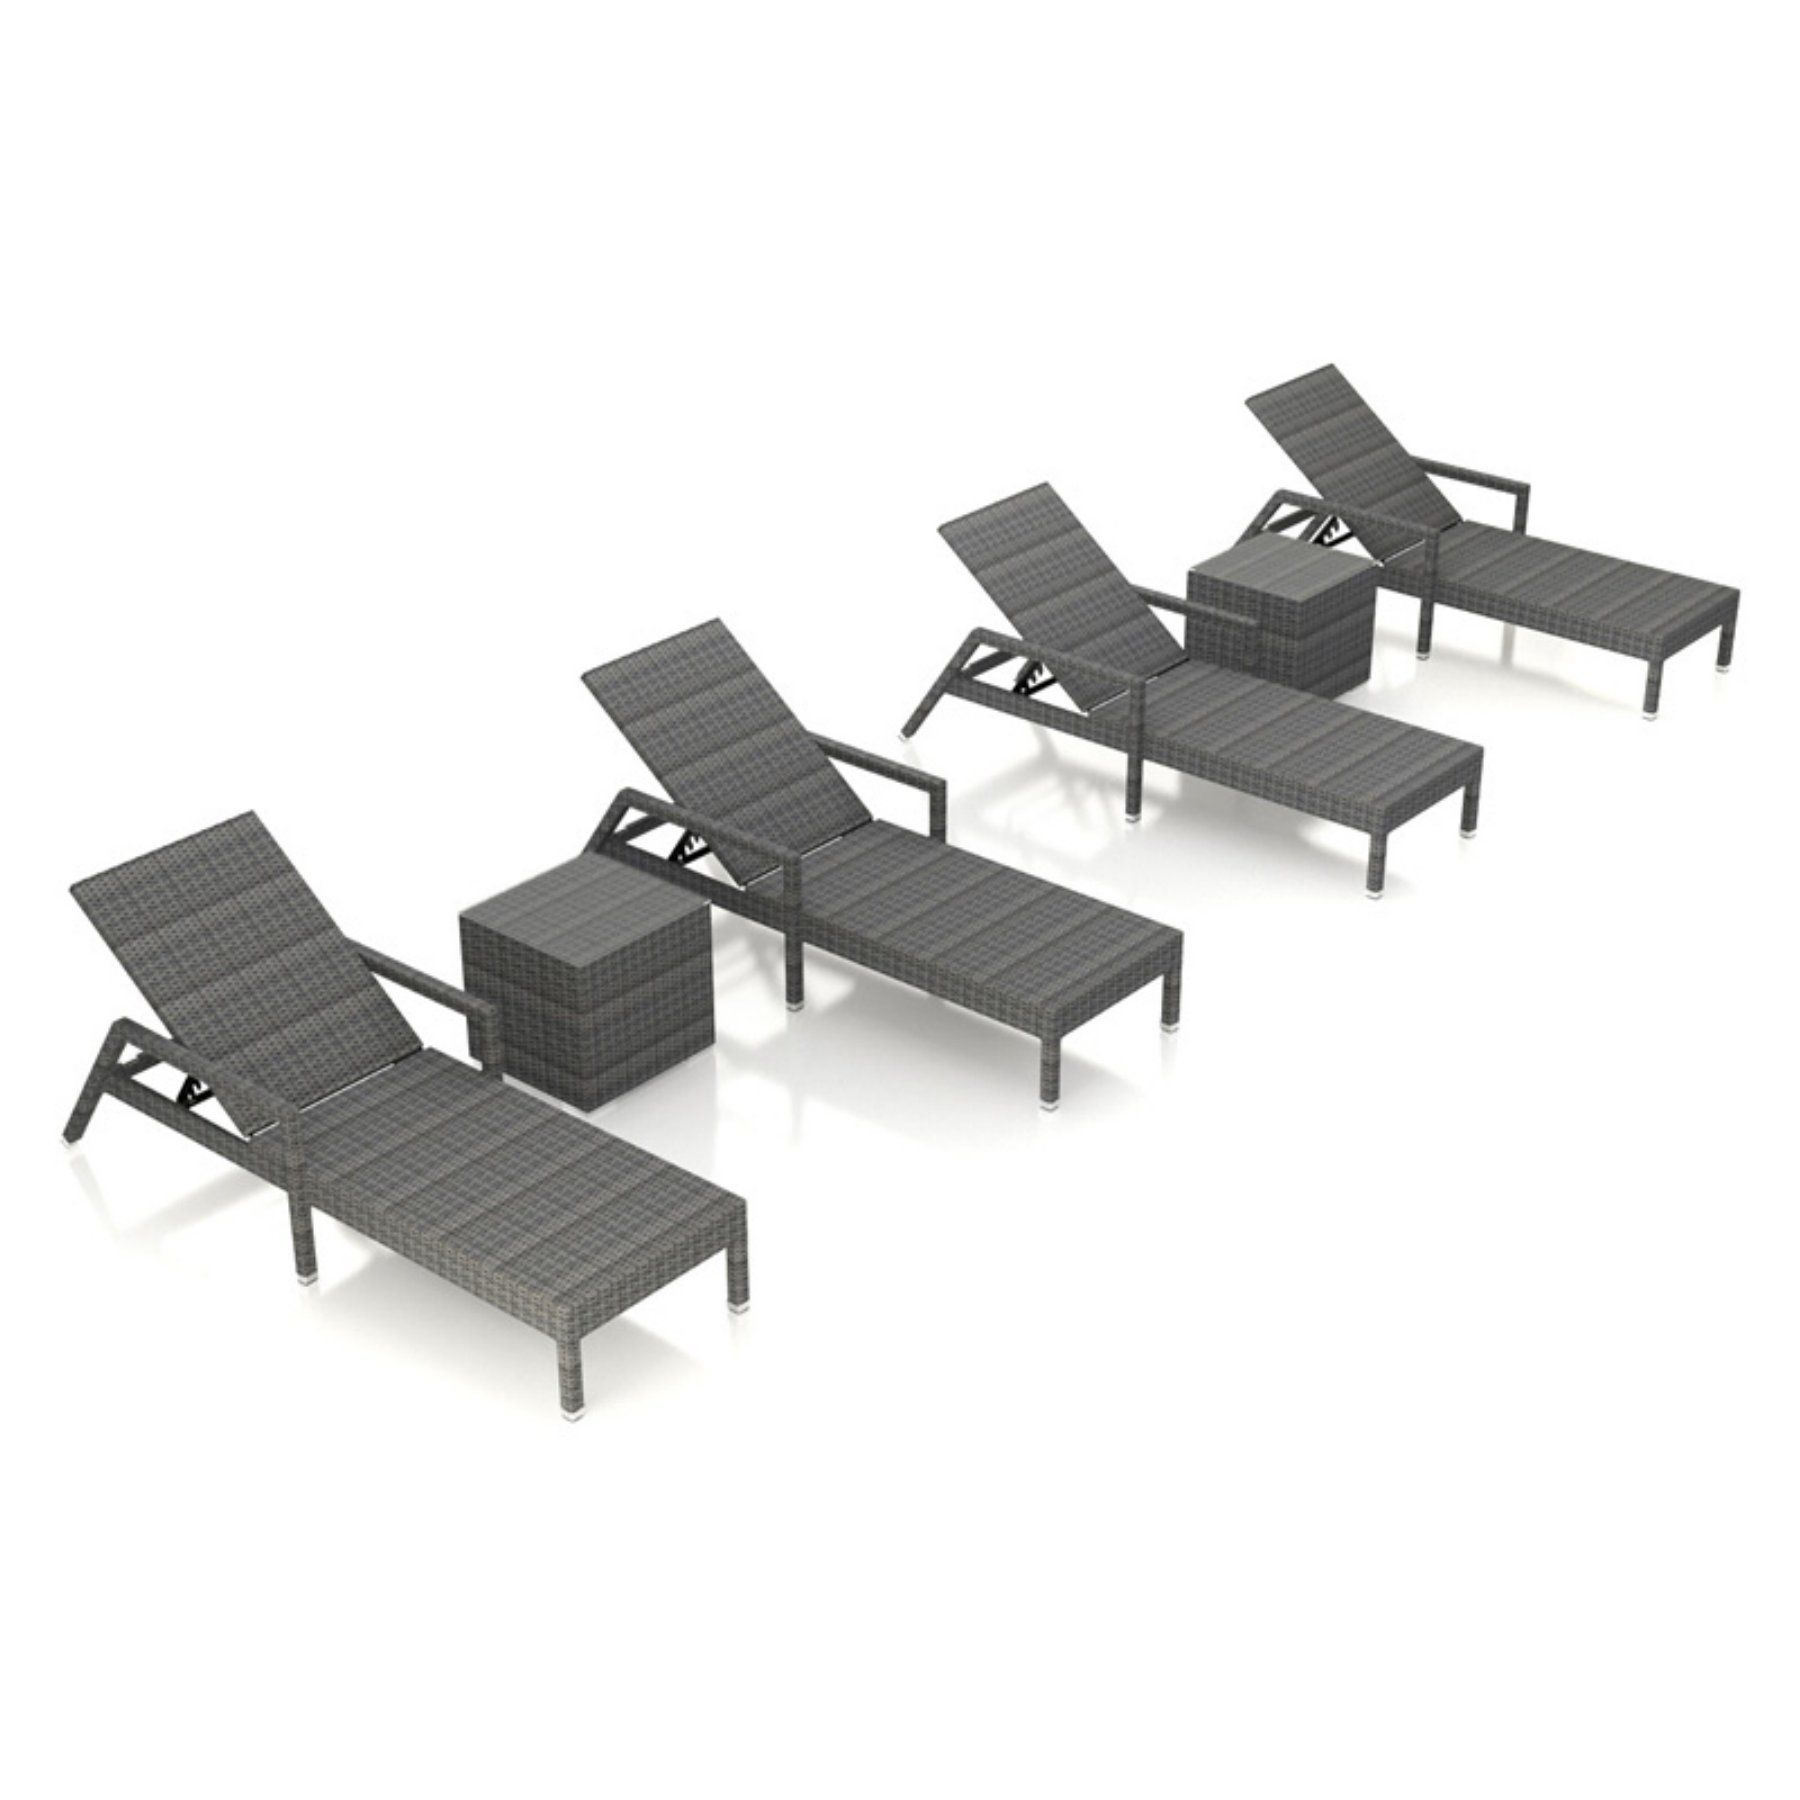 Harmonia Living District 6 Piece Outdoor Chaise Lounge Set Throughout Newest Nautical 3 Piece Outdoor Chaise Lounge Sets With Wheels And Table (View 18 of 25)